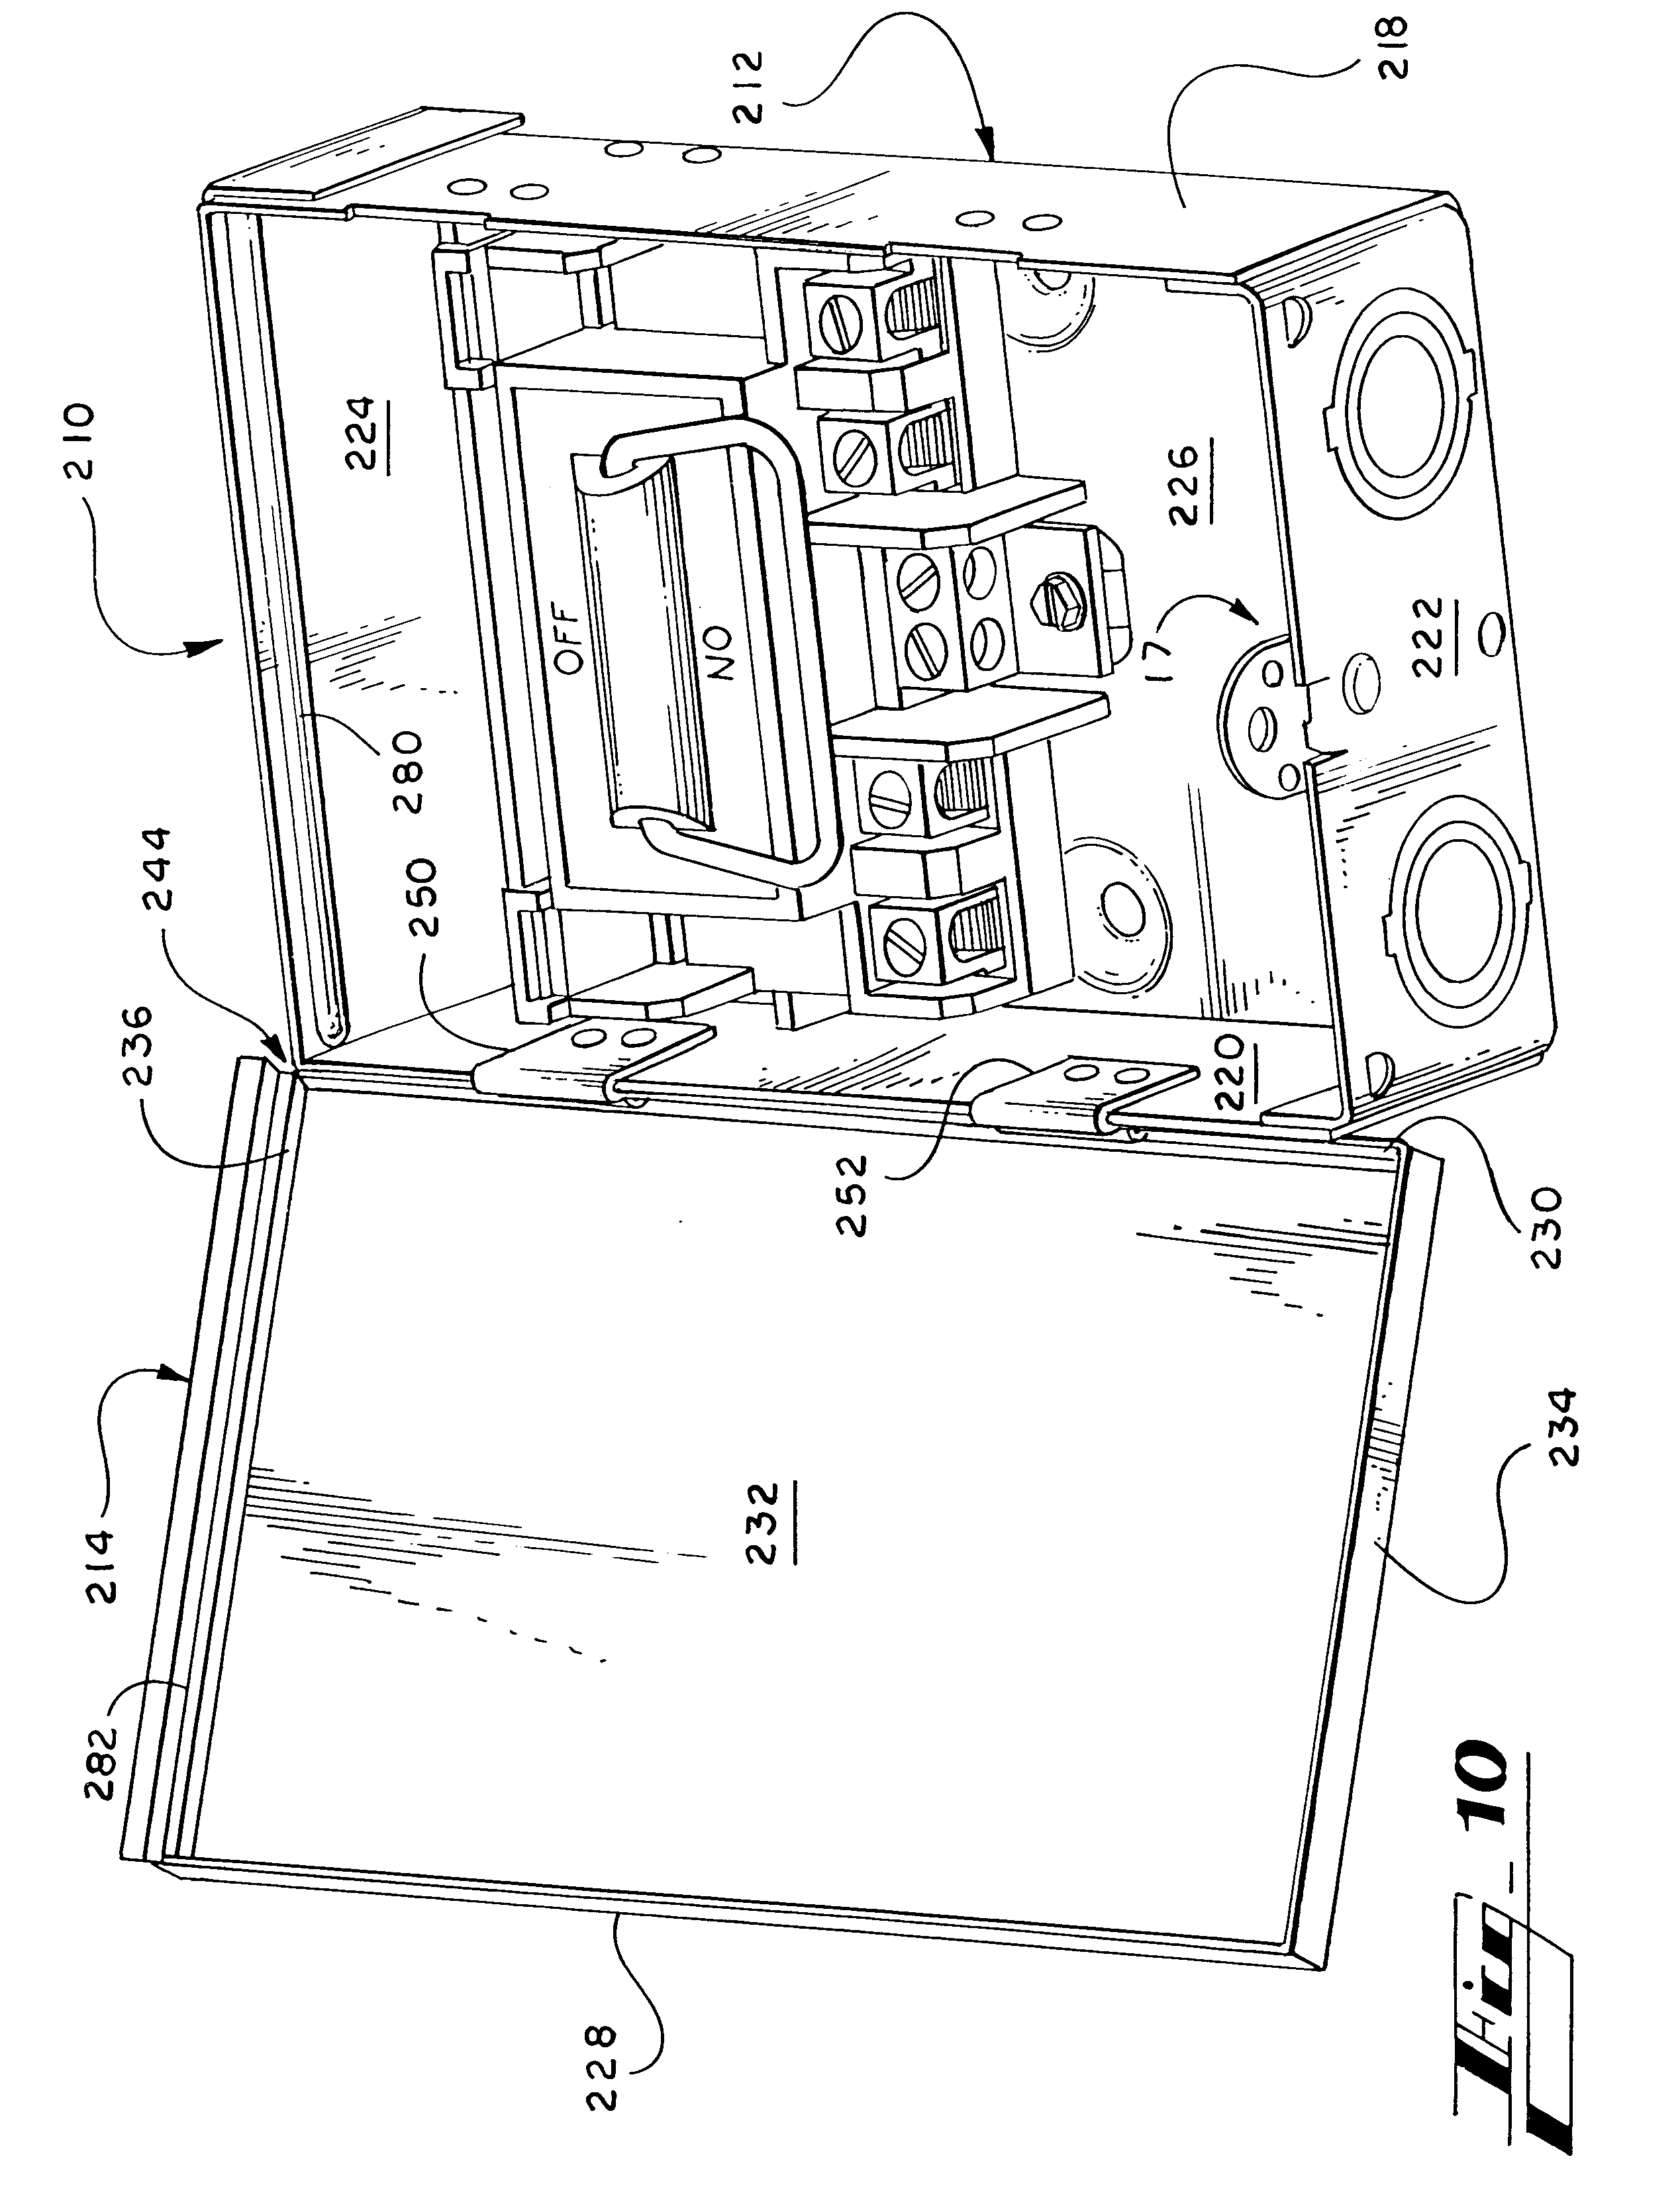 patent us6630637 - ac disconnect switch